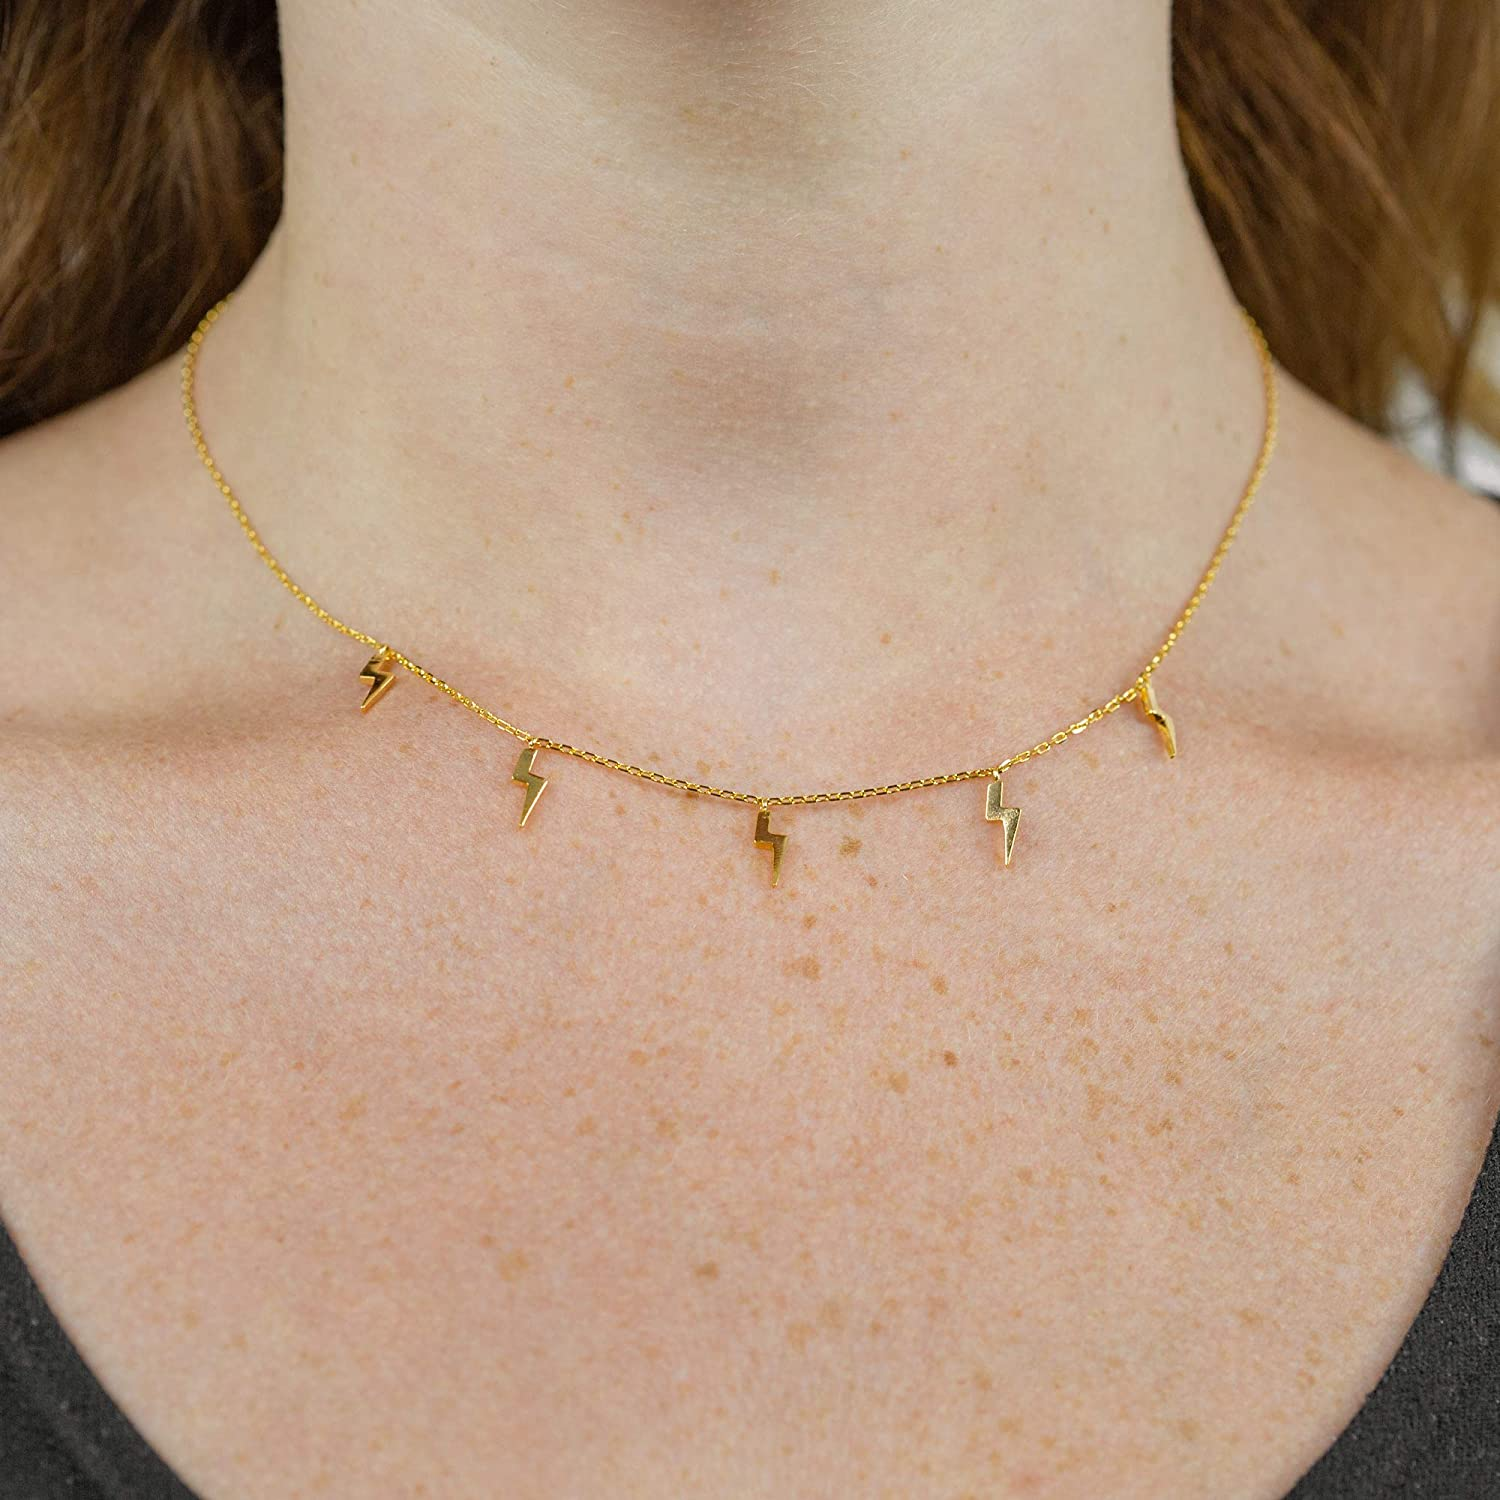 Columbus 14K Gold or Rhodium Plated Charm Necklace Lightning Bolt Pendant Dainty Layering Necklace Star Station Necklace